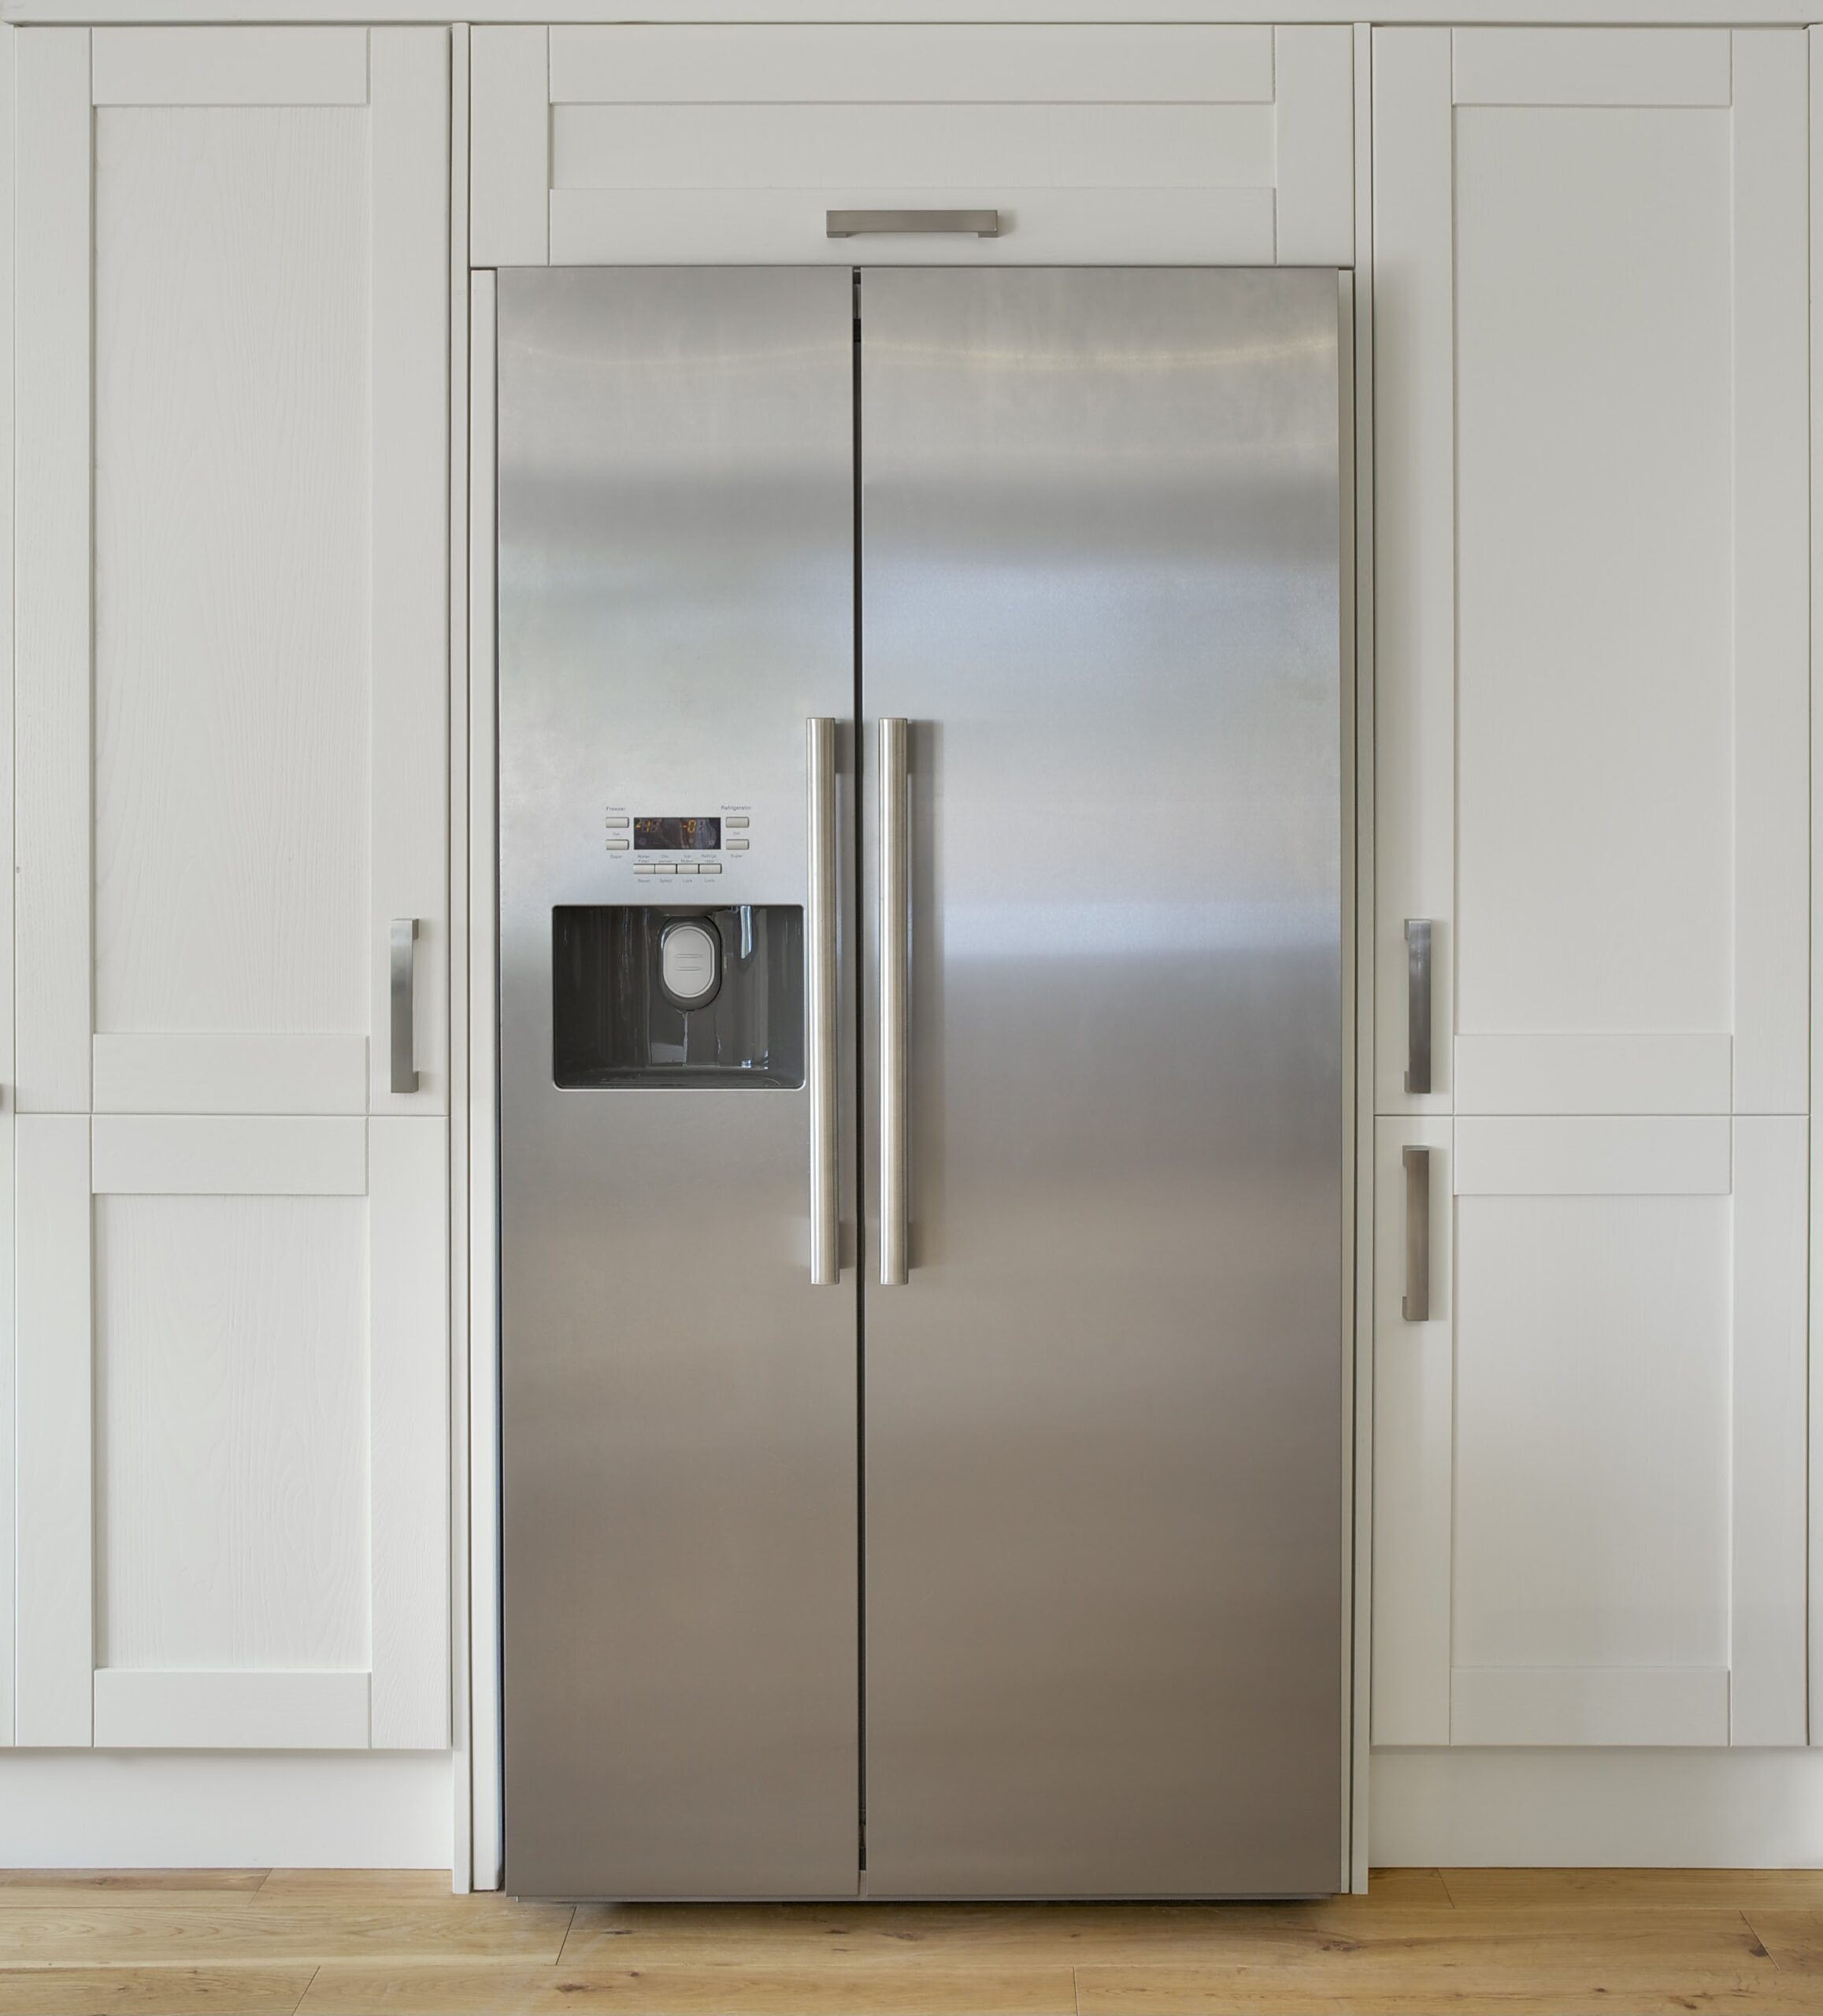 Is Your Refrigerator Leaking Water?